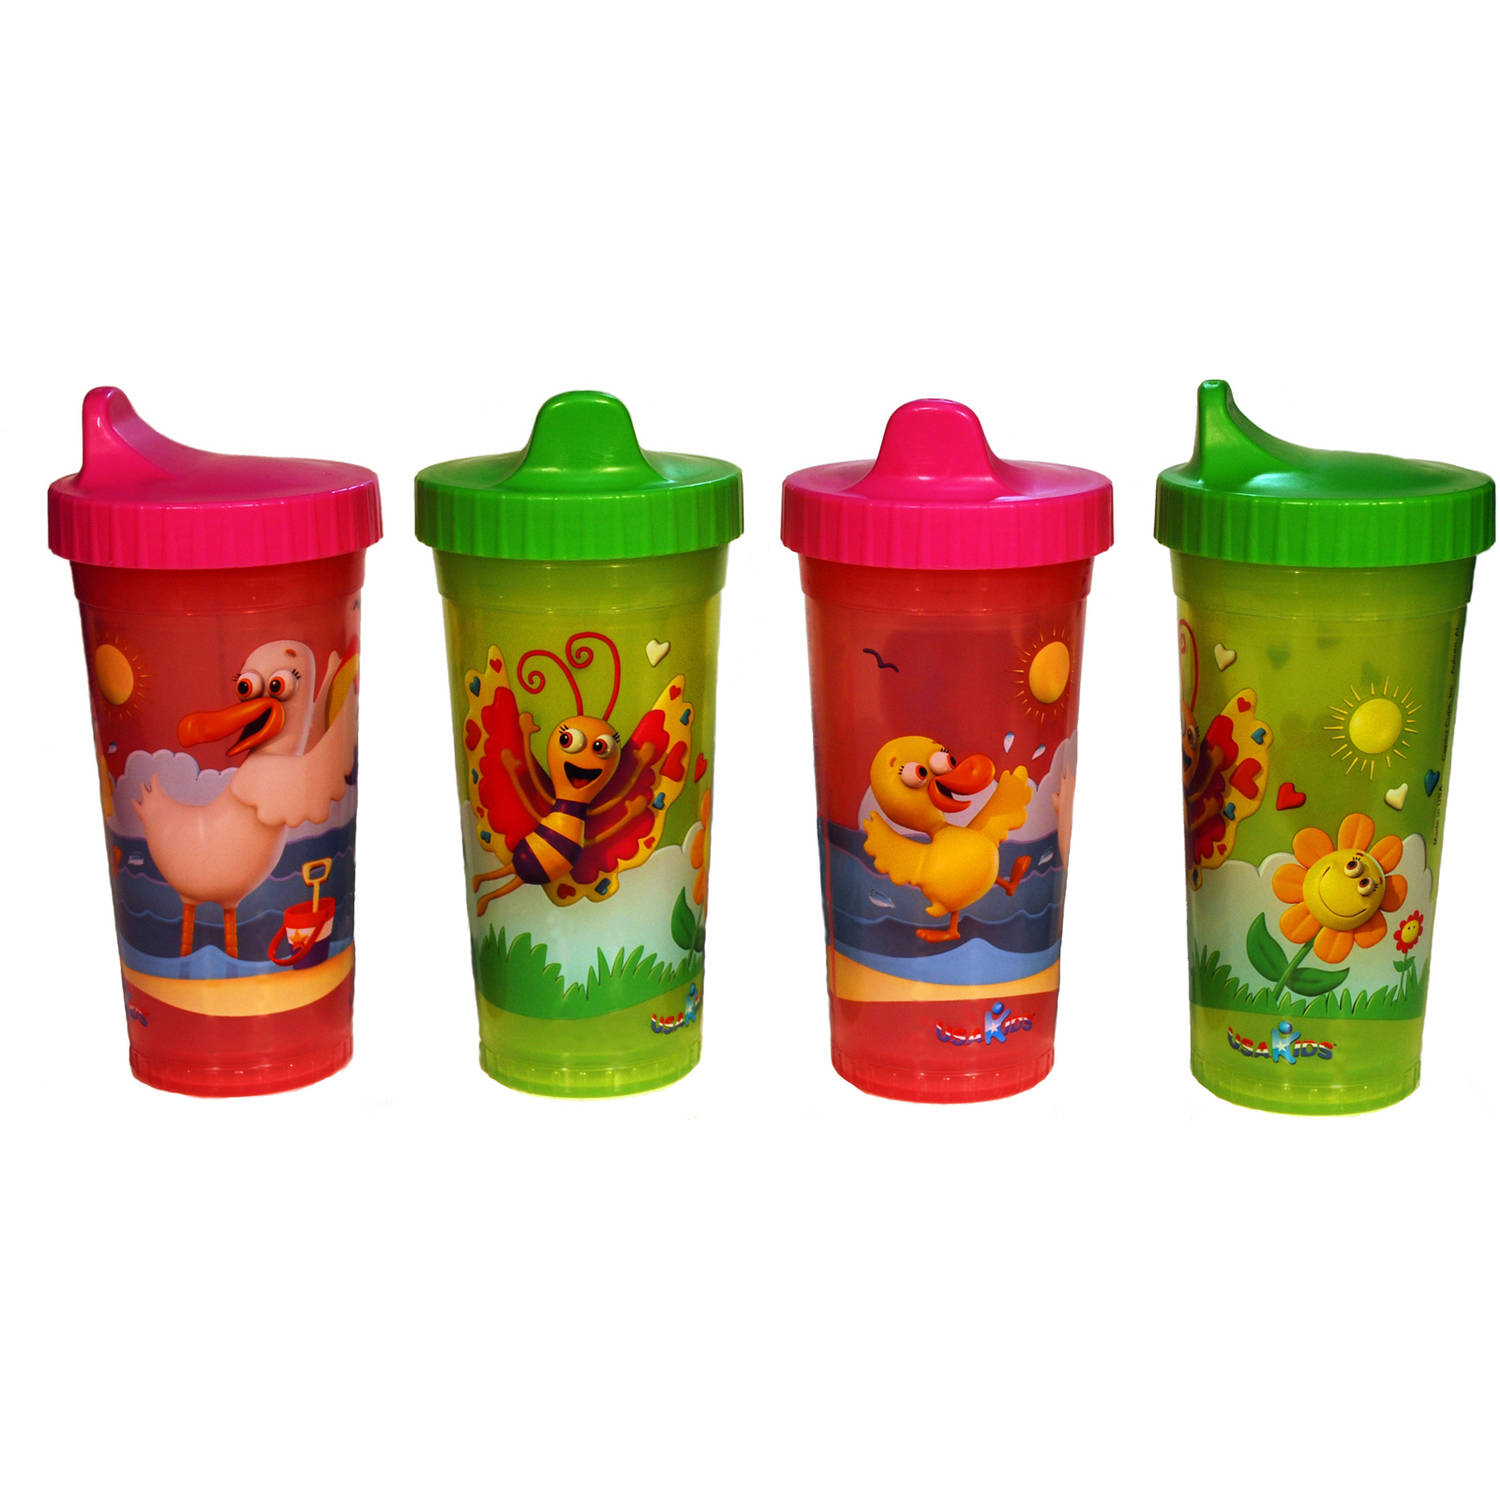 USA Kids - Fun & Sun Insulated BPA-Free Sippy Cups, 4-Pack